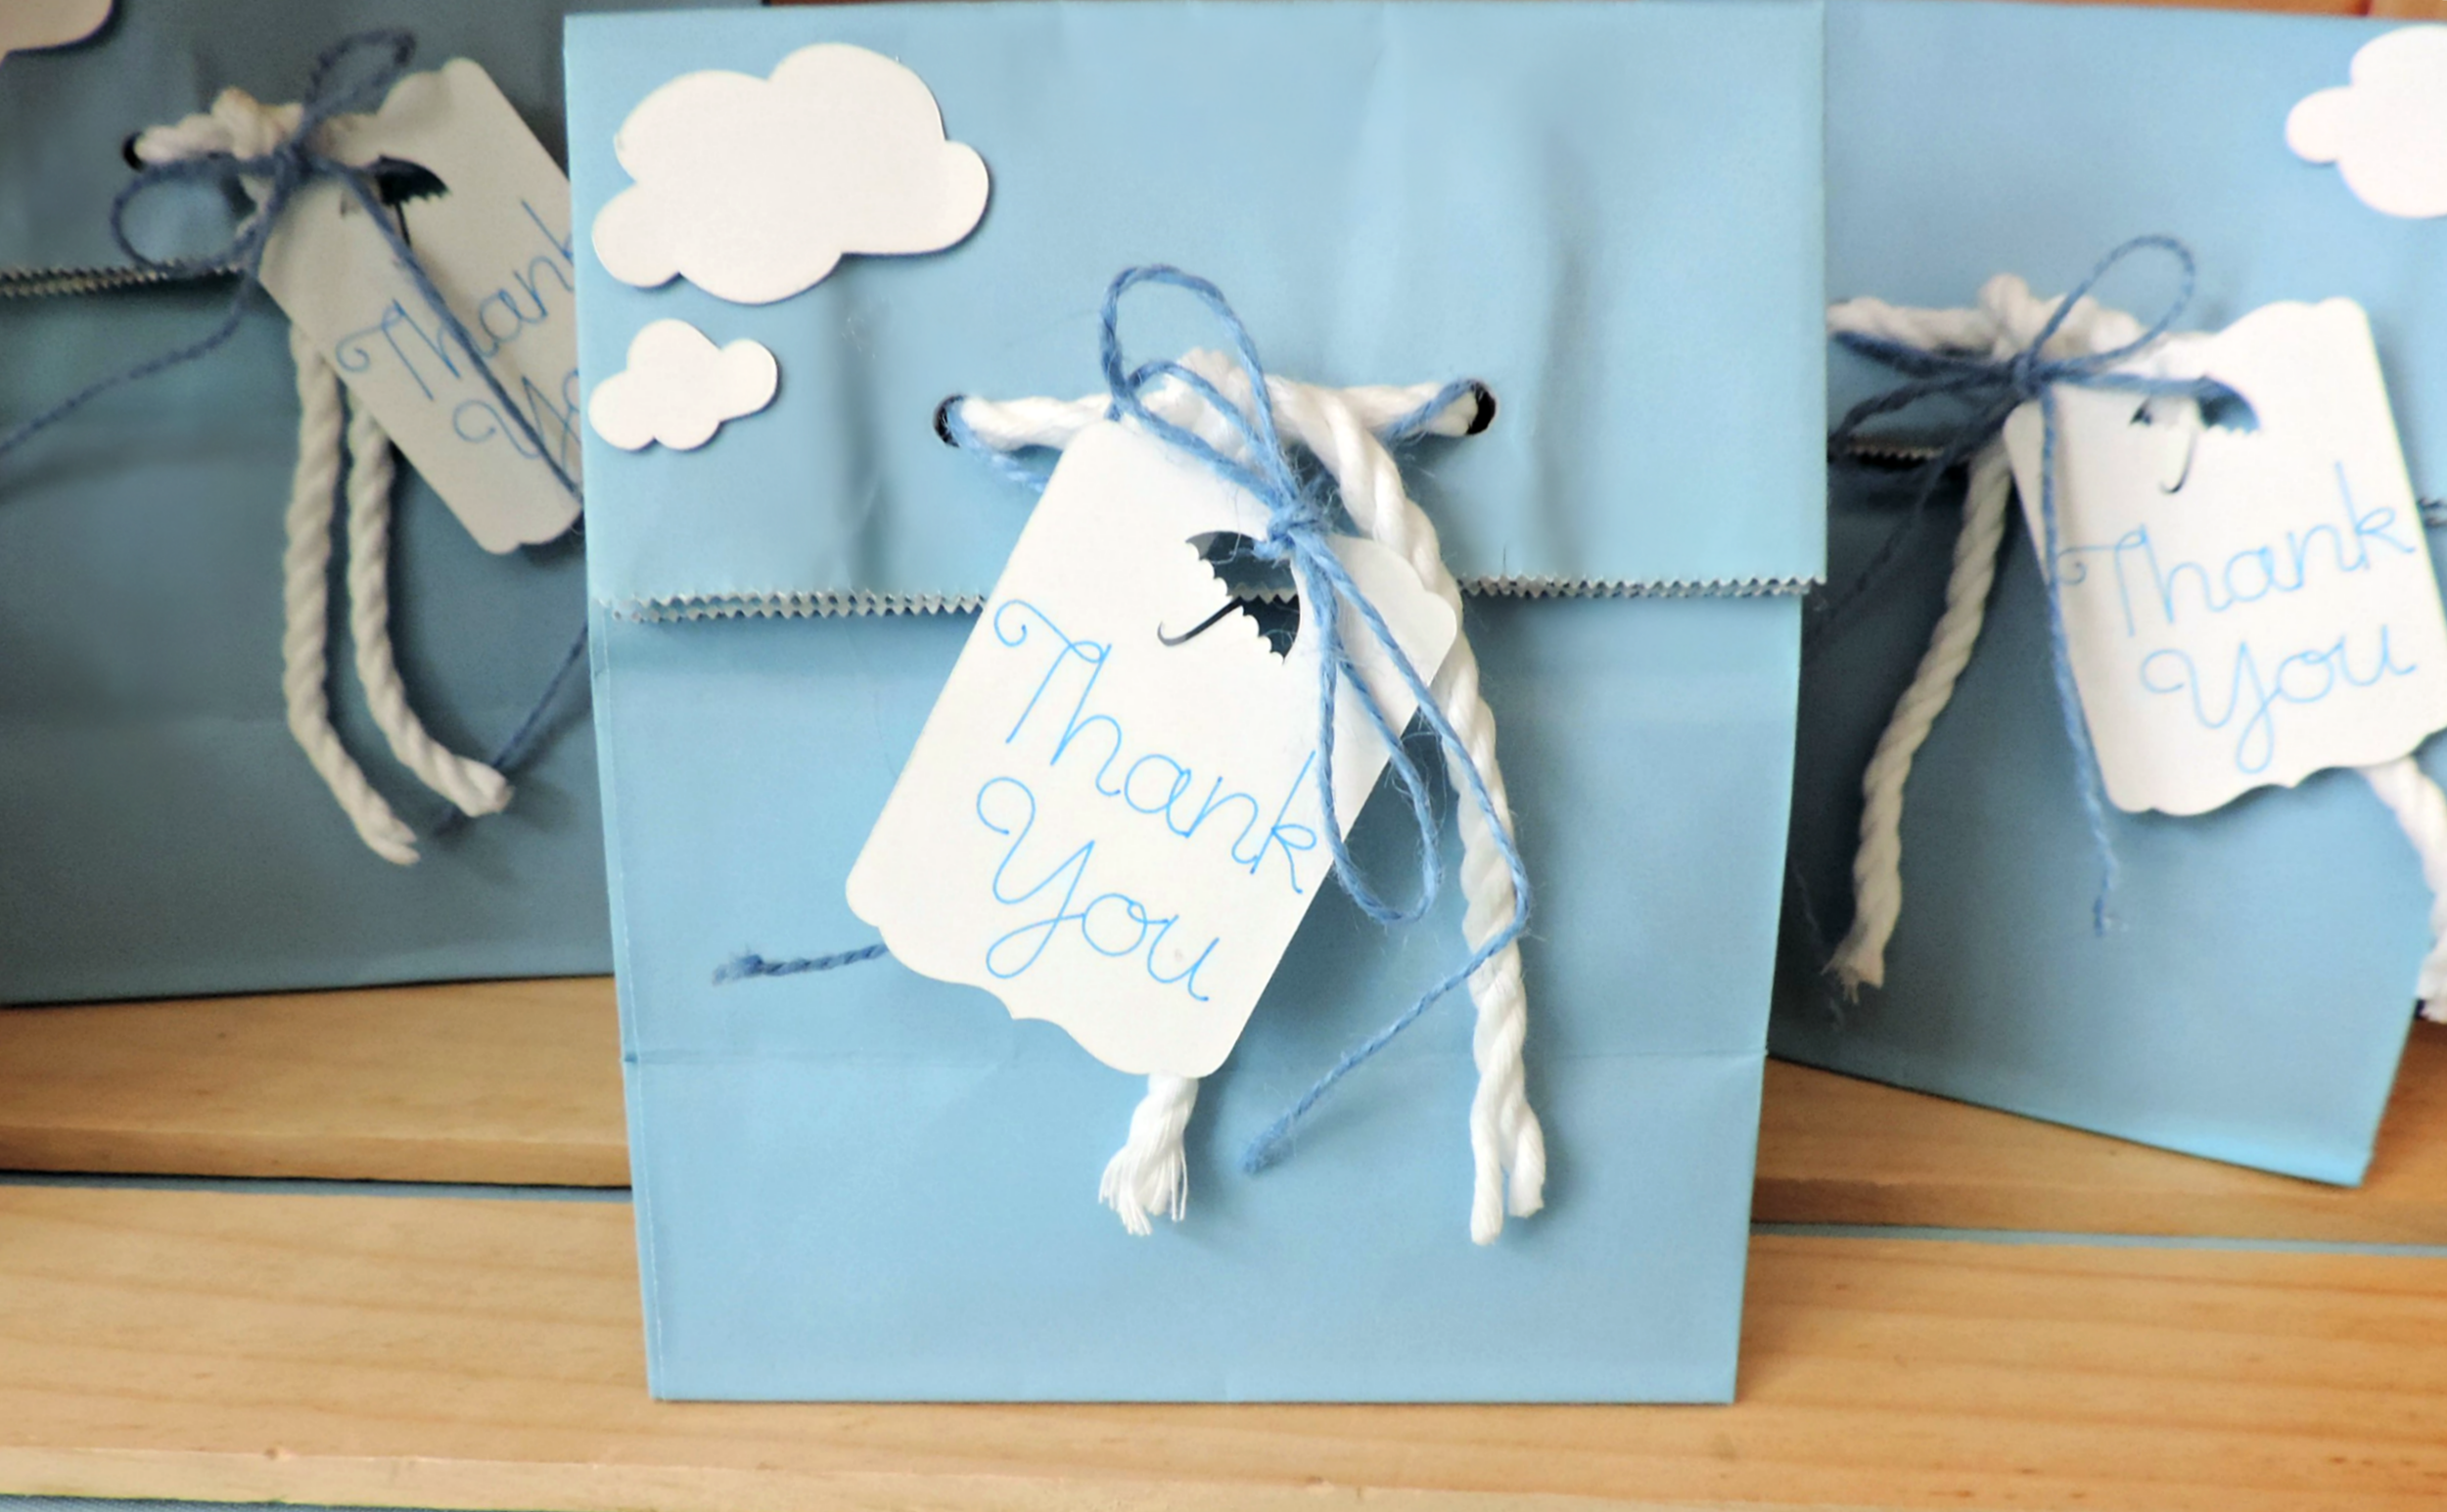 showered with love -baby shower gift bags-thank you tags-april showers bring may flowers-baby shower favor bags-www.SugarPartiesLA.com.png